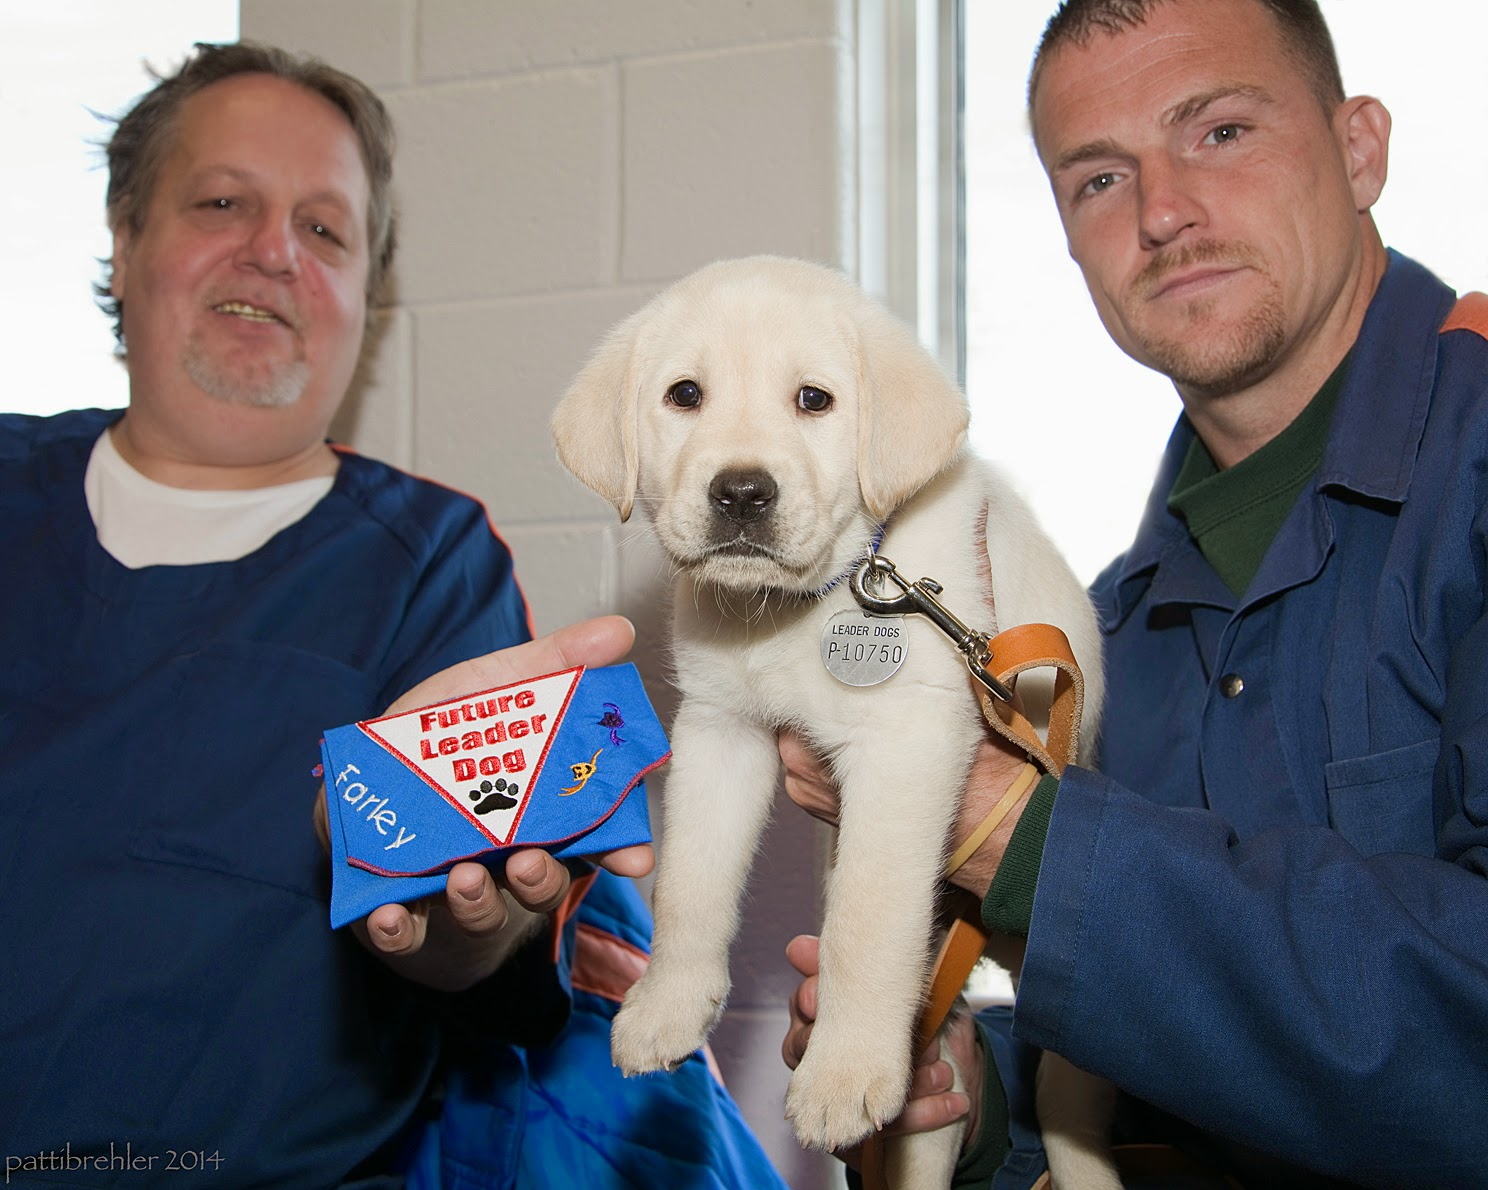 """Two men dressed in the blue prison uniforms stand on either side of a small yellow lab puppy. The man on the right is holding the puppy up under his chest. The puppy is looking at the camera (and the men are too) and has a leash attached to his collar. The man on the left is holding the blue Future Leader Dog bandana that has been embroidered with his name, """"Farley."""""""